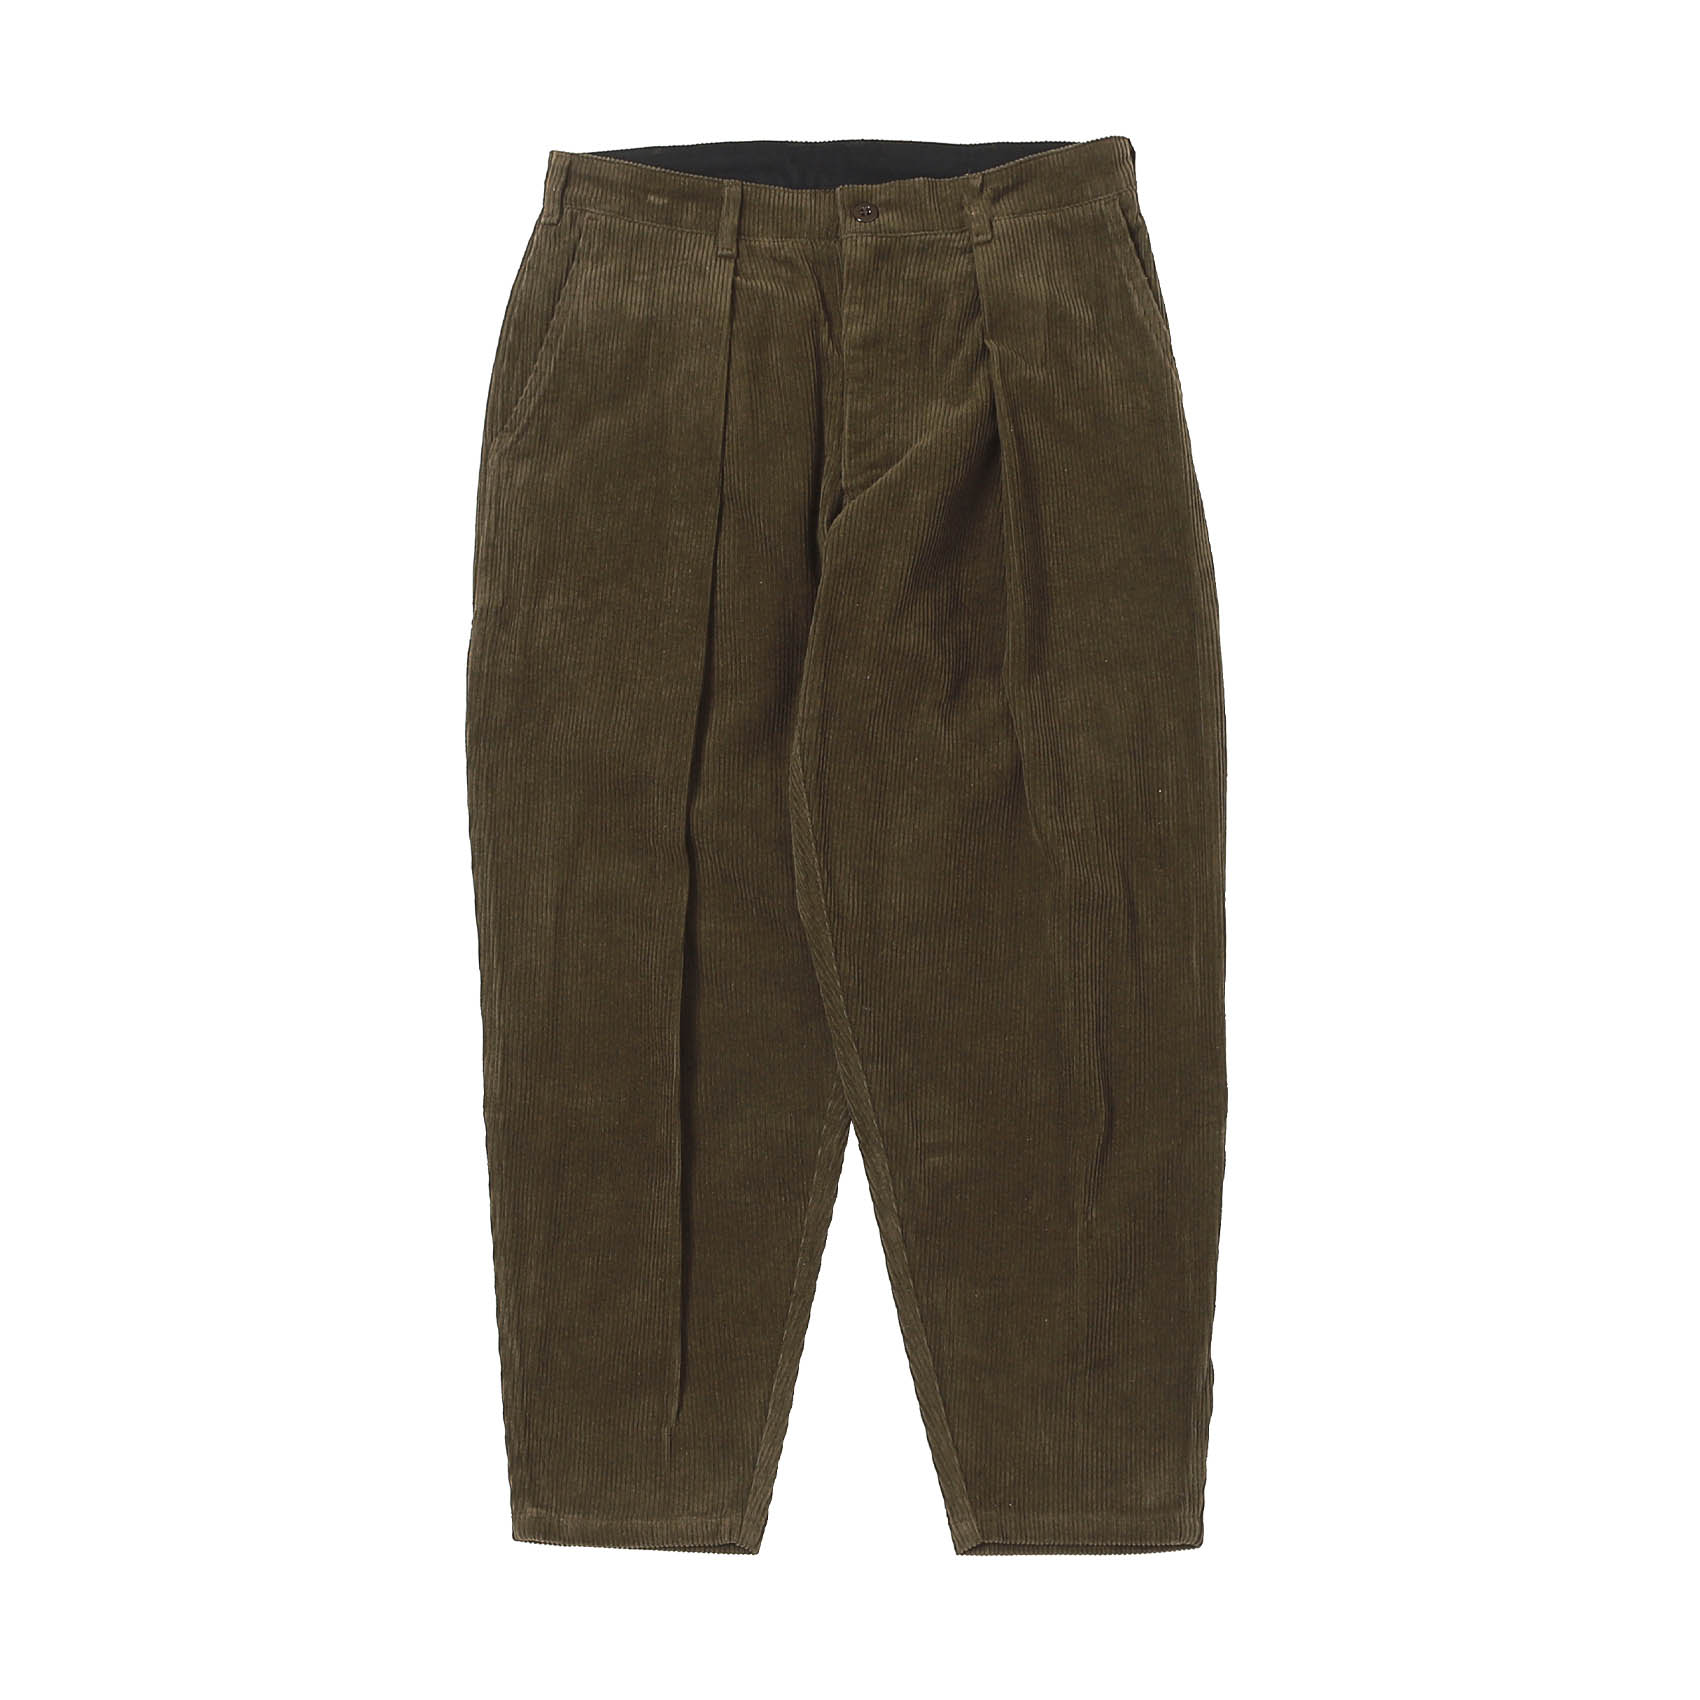 CORDUROY RIDING PANTS - BROWN